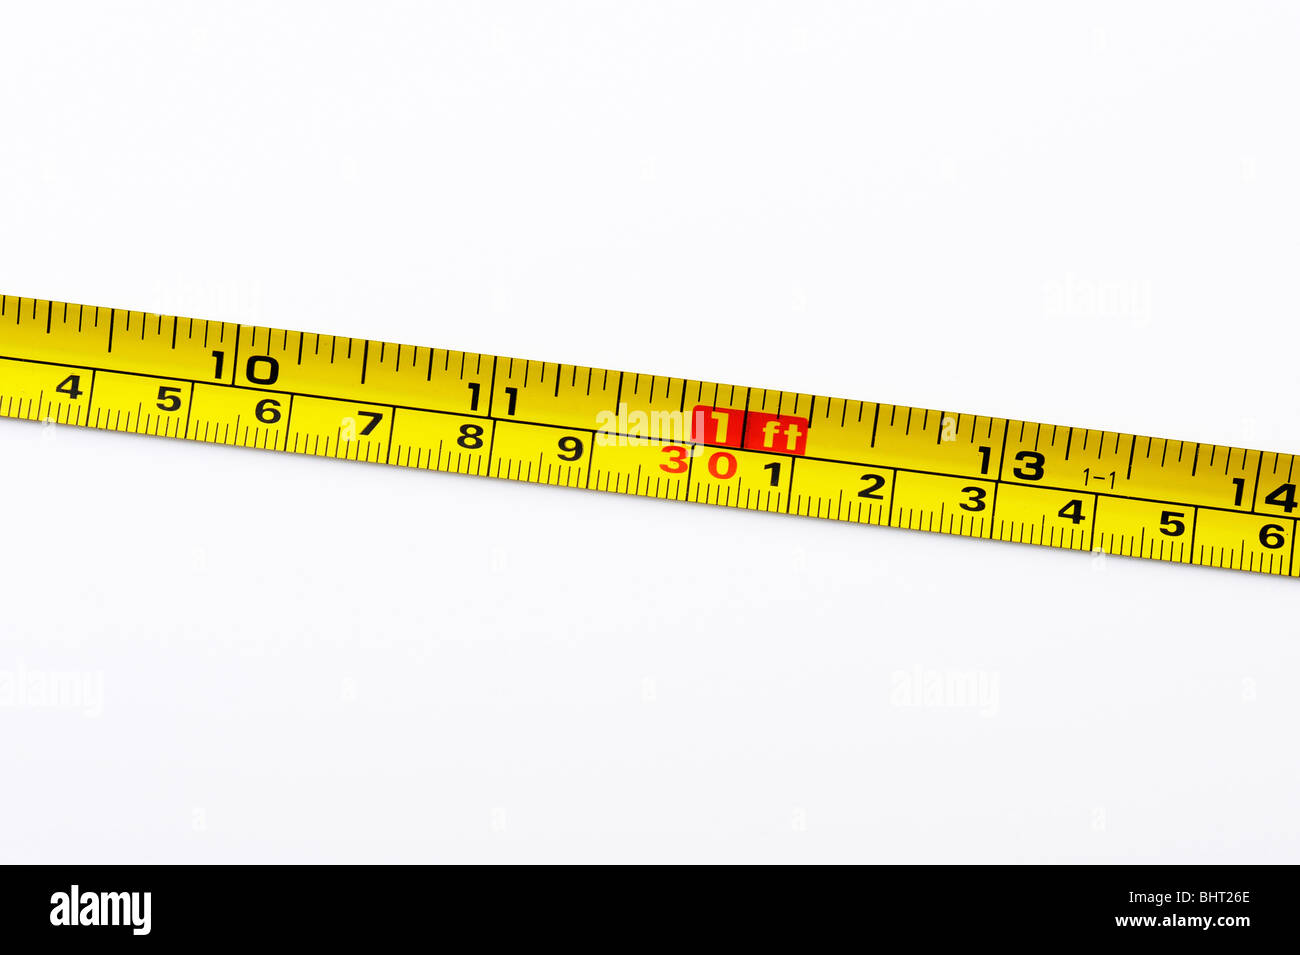 A tape measure - Stock Image